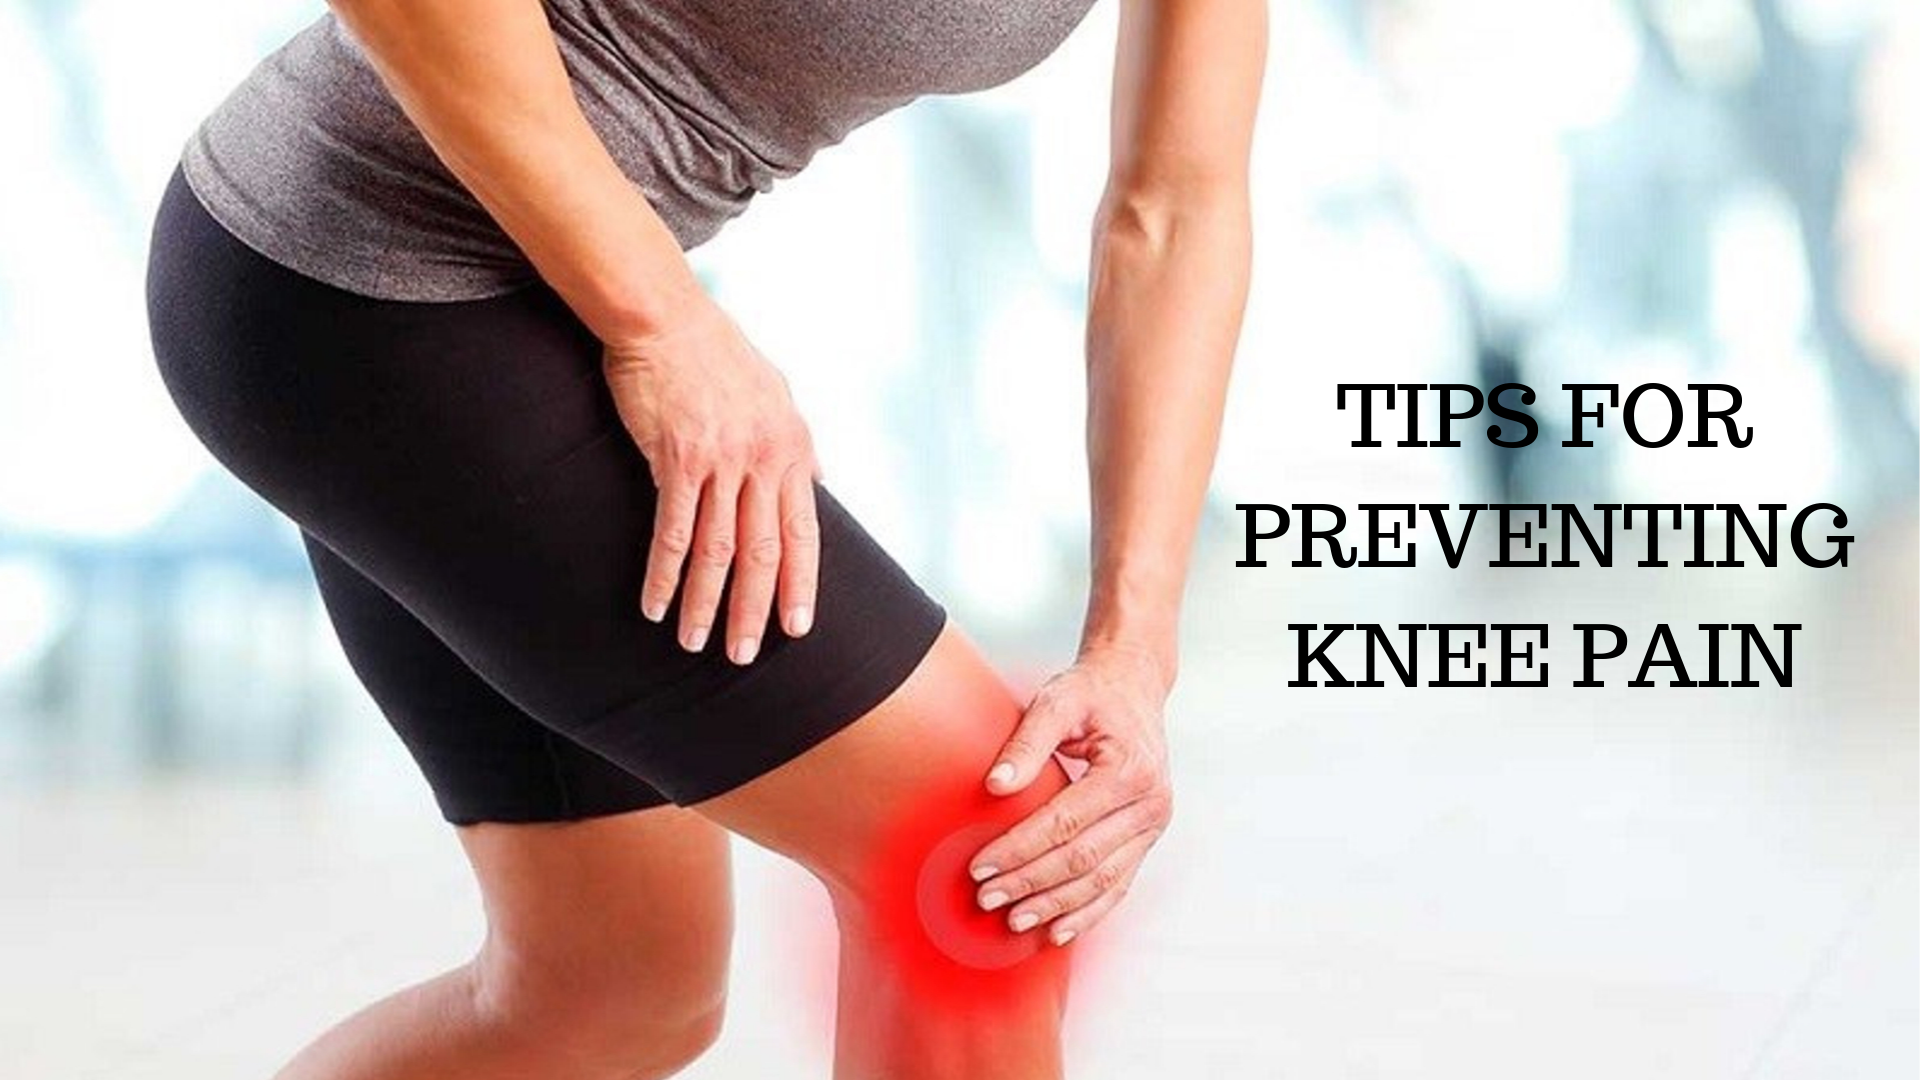 Tips for Preventing Knee Pain